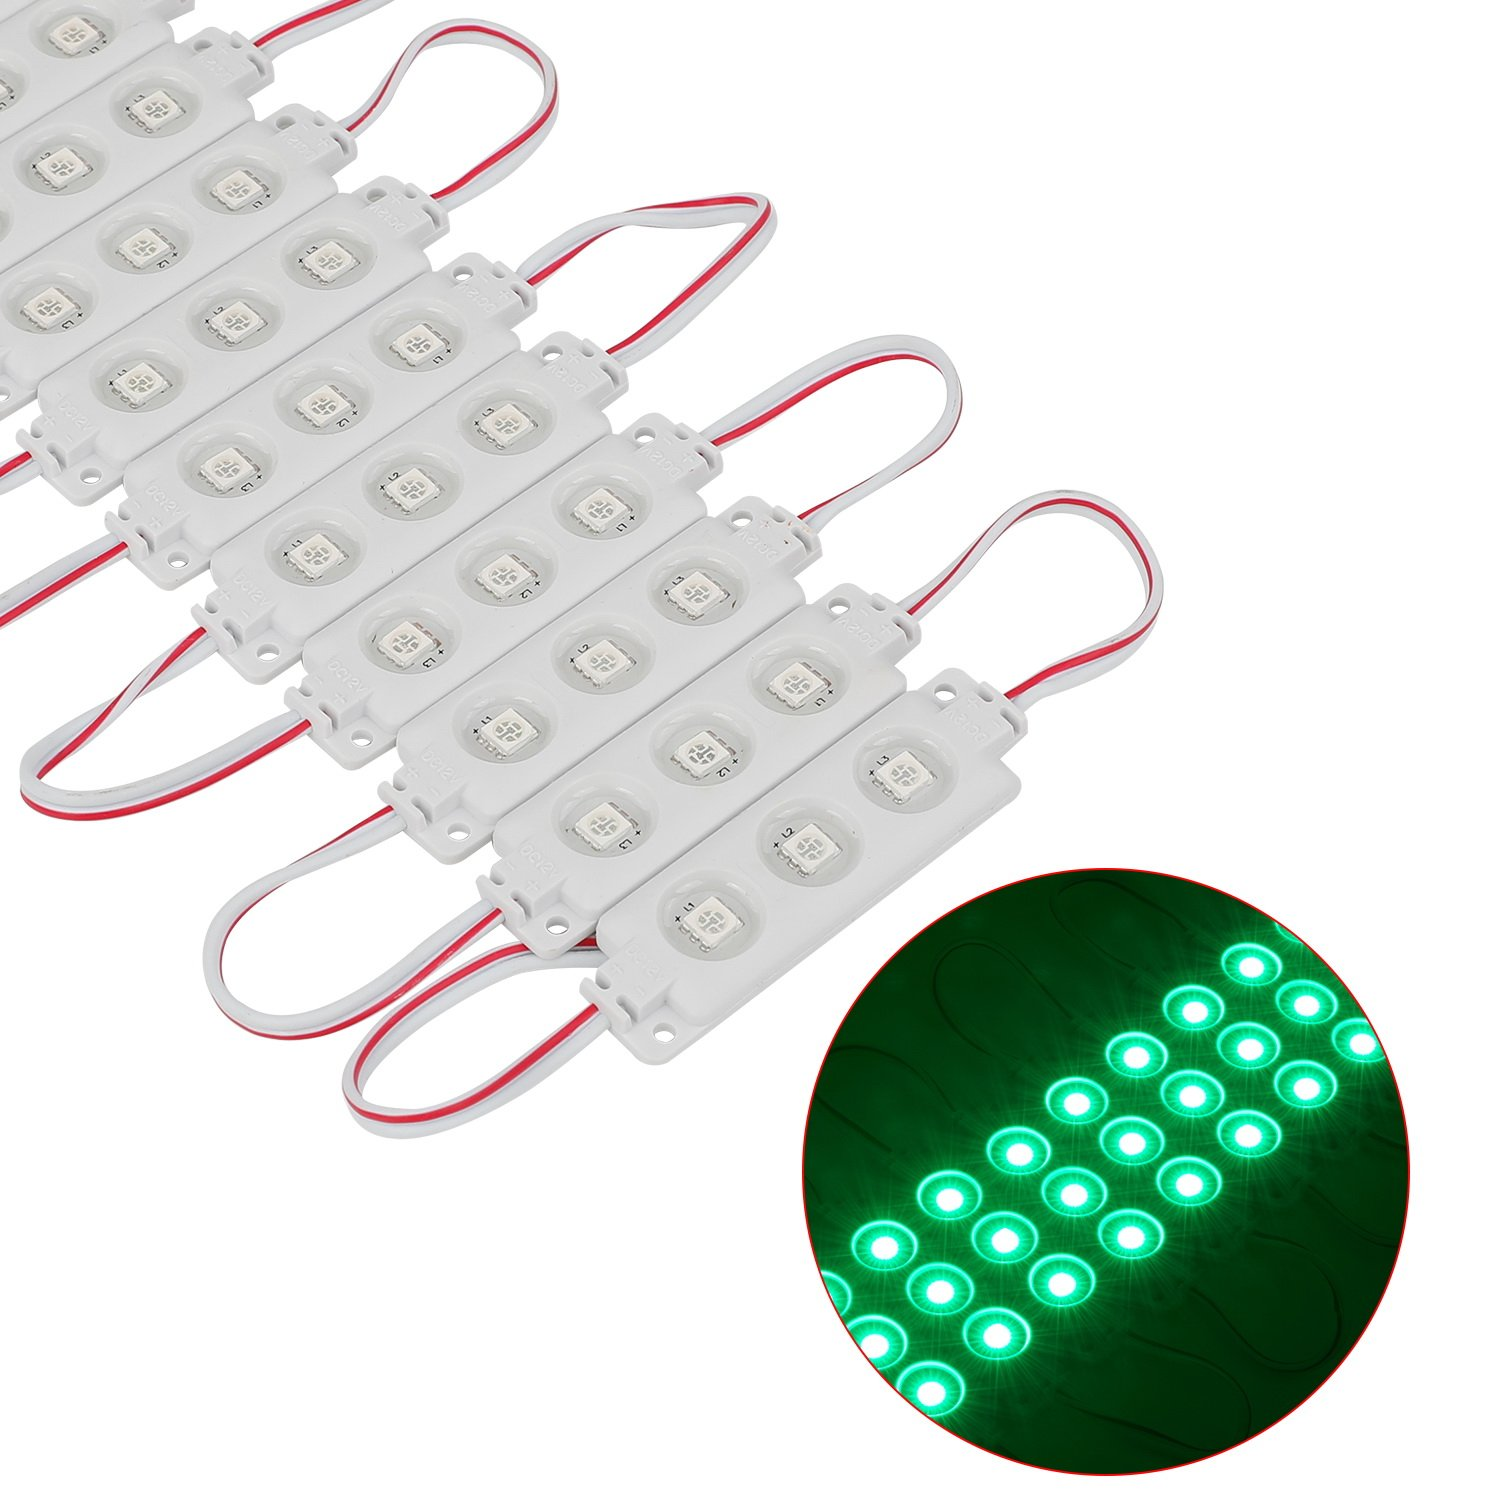 200PCS Injection 3 LED Module Green 5050 SMD 0.72W Waterproof Decorative Back Light for Letter Sign Advertising Signs with Tape Adhesive Backside